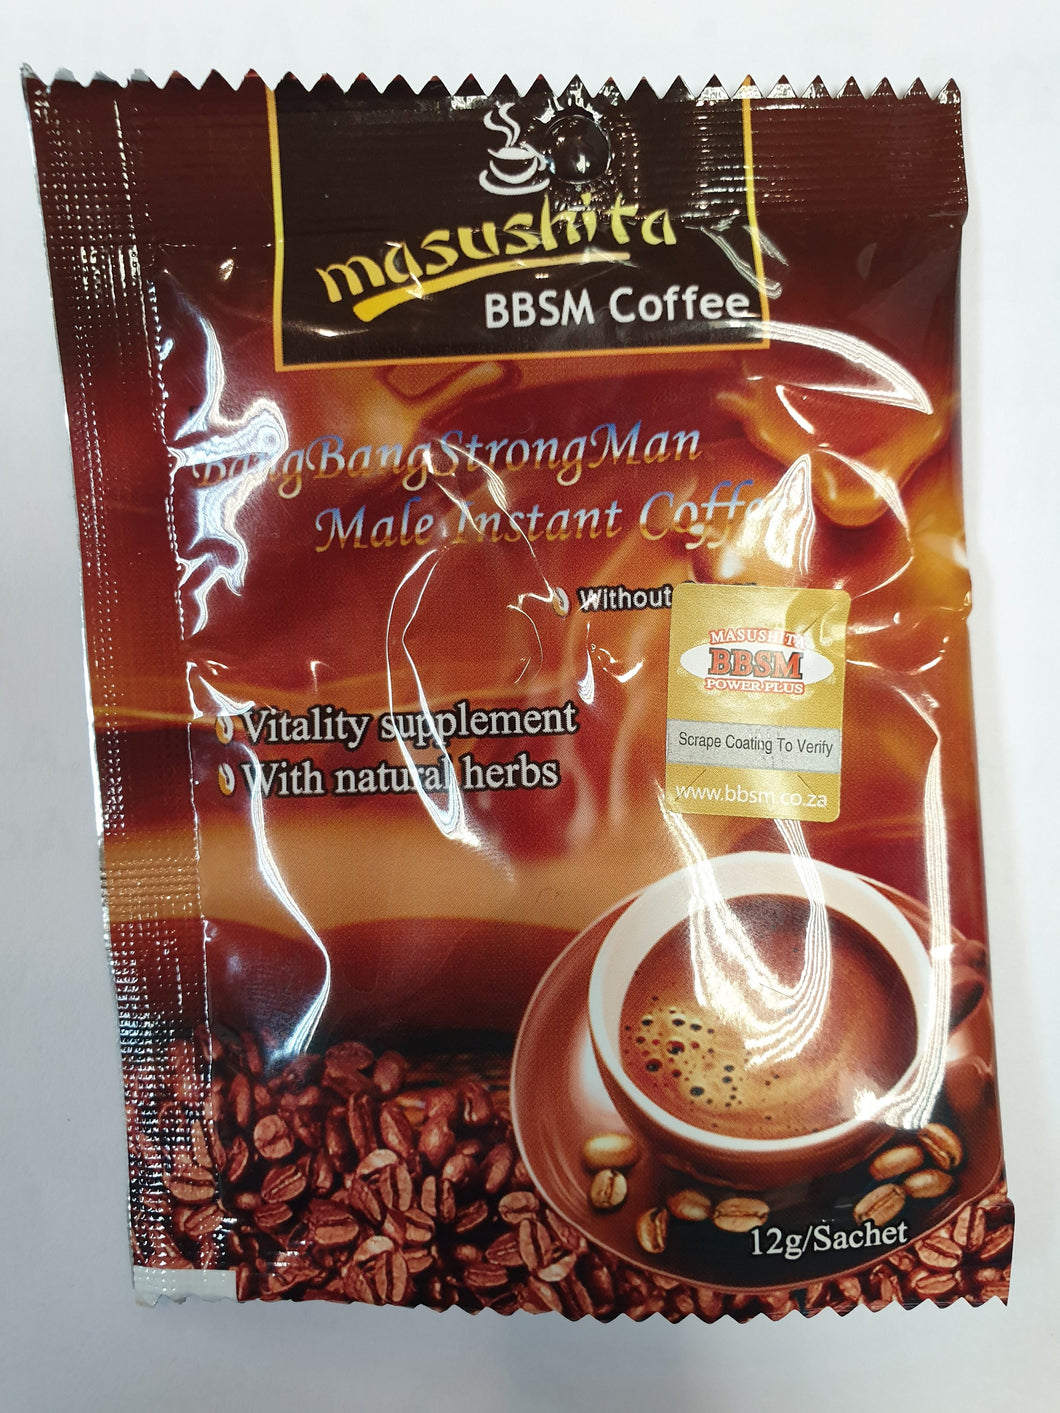 Masushita BBSM Coffee Pack of 30 Sachets - Basedonlogistics